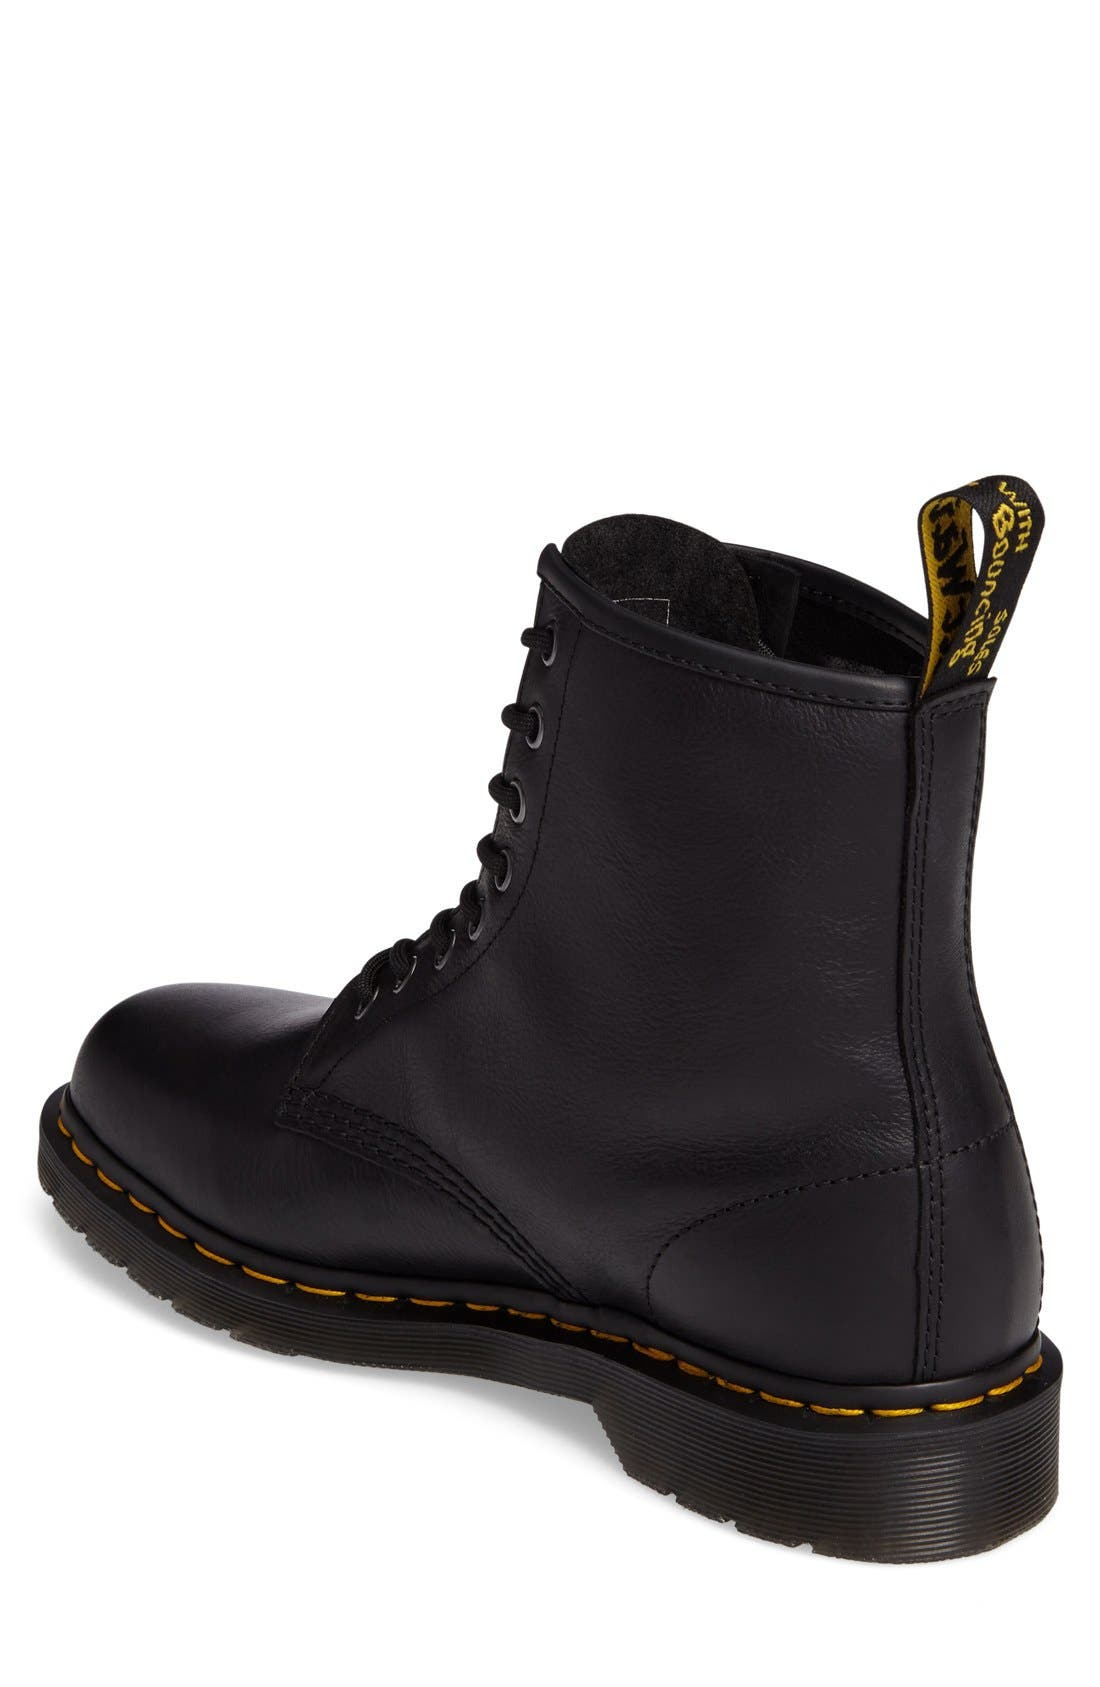 '1460' Plain Toe Boot,                             Alternate thumbnail 5, color,                             001